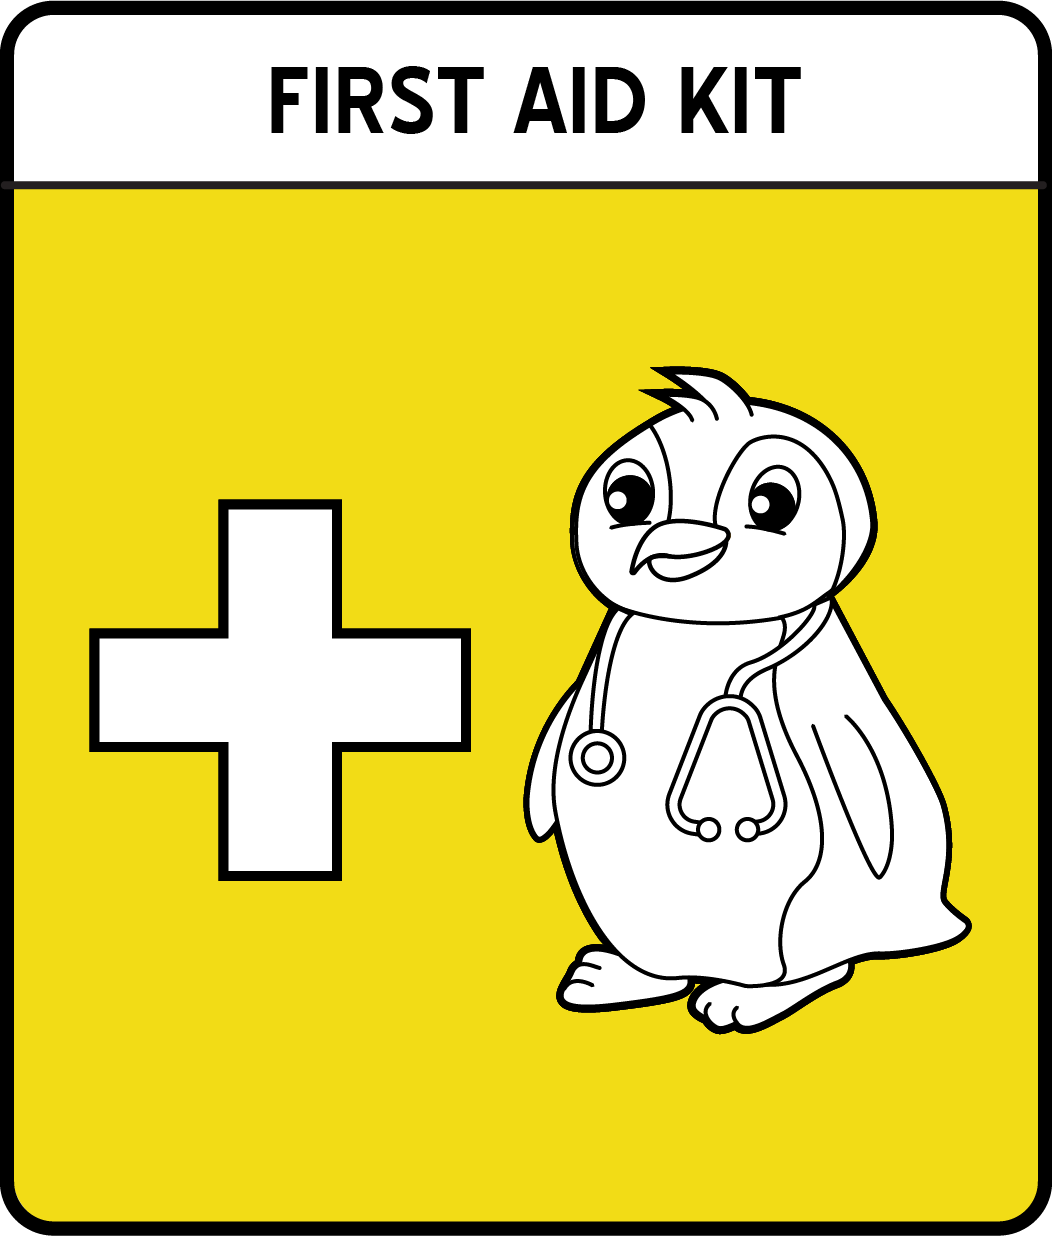 A cartoon penguin wearing a stethoscope next to a plus symbol.